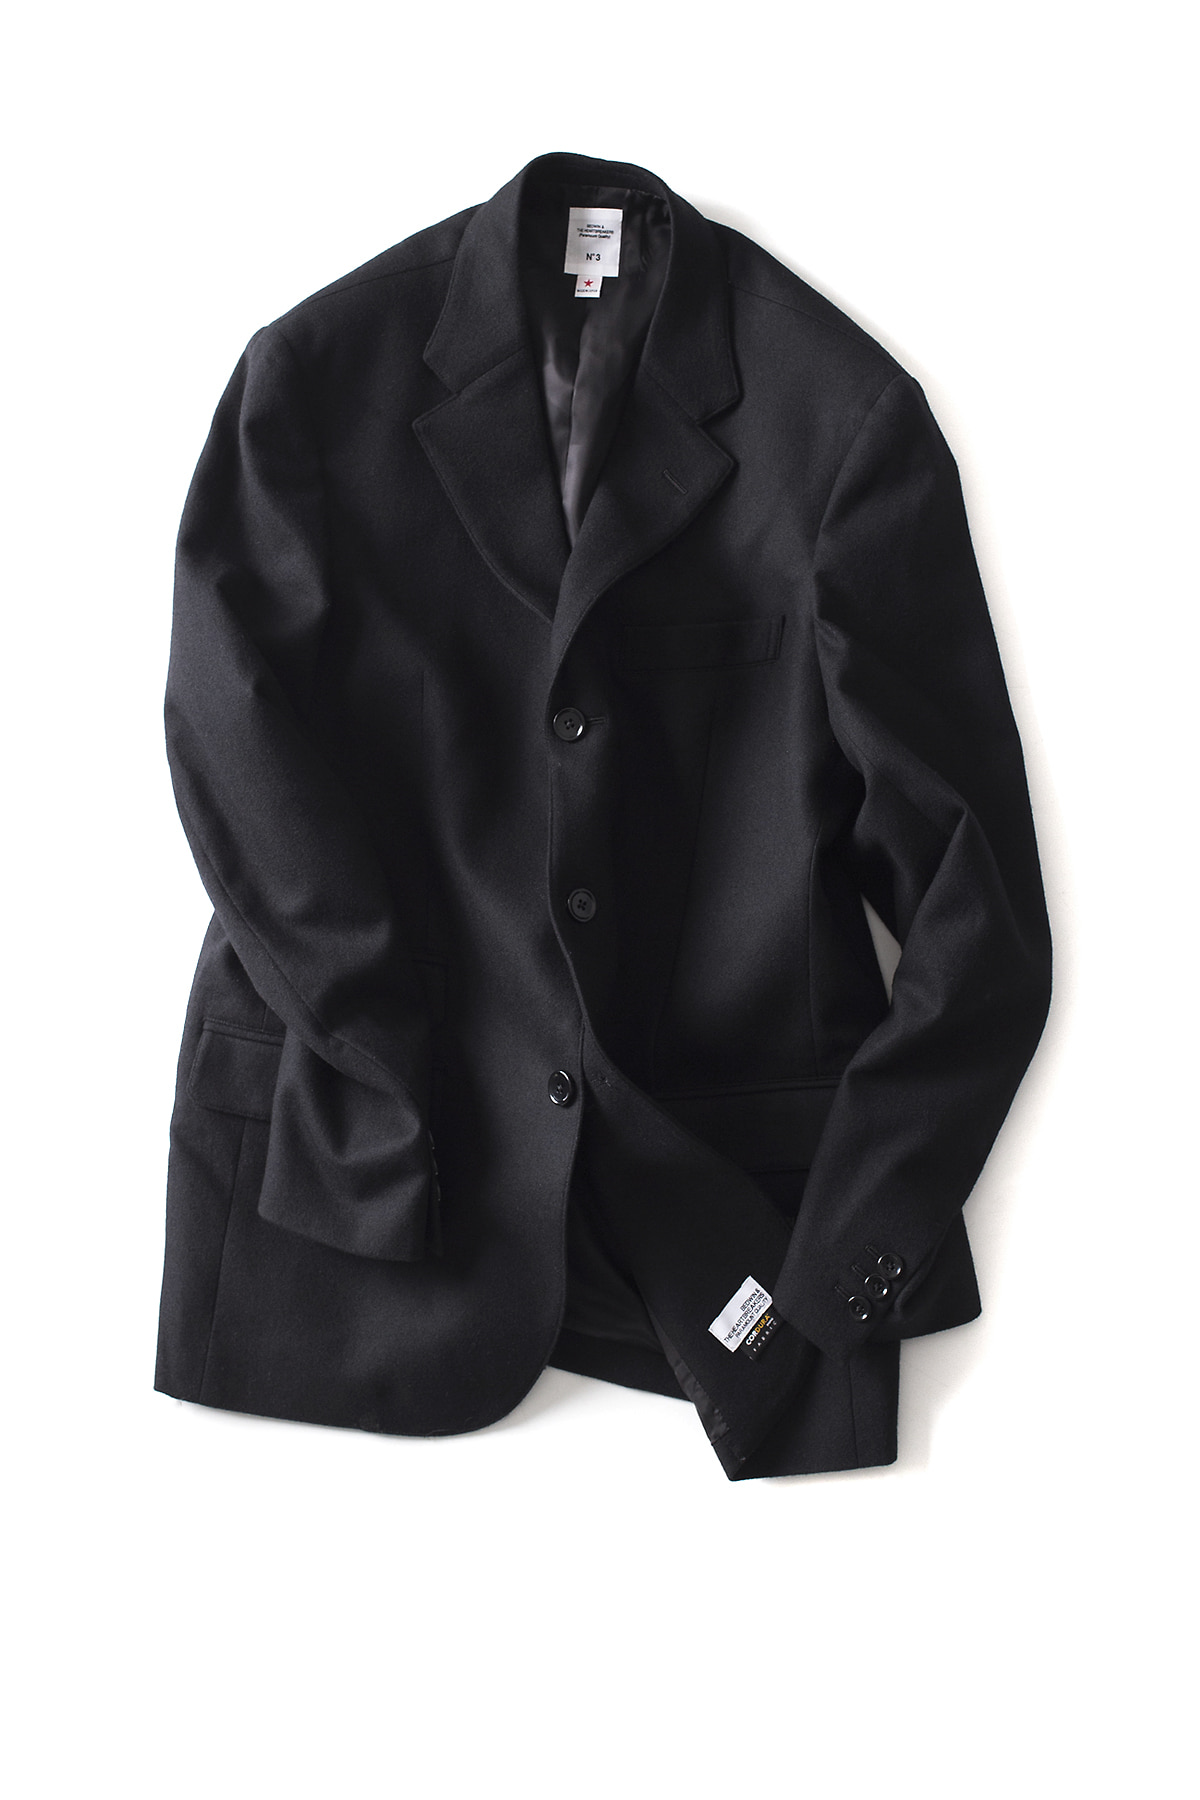 "Bedwin & The Heartbreakers : 3B Wool Taylor Jacket ""MICHAEL"" (Black)"